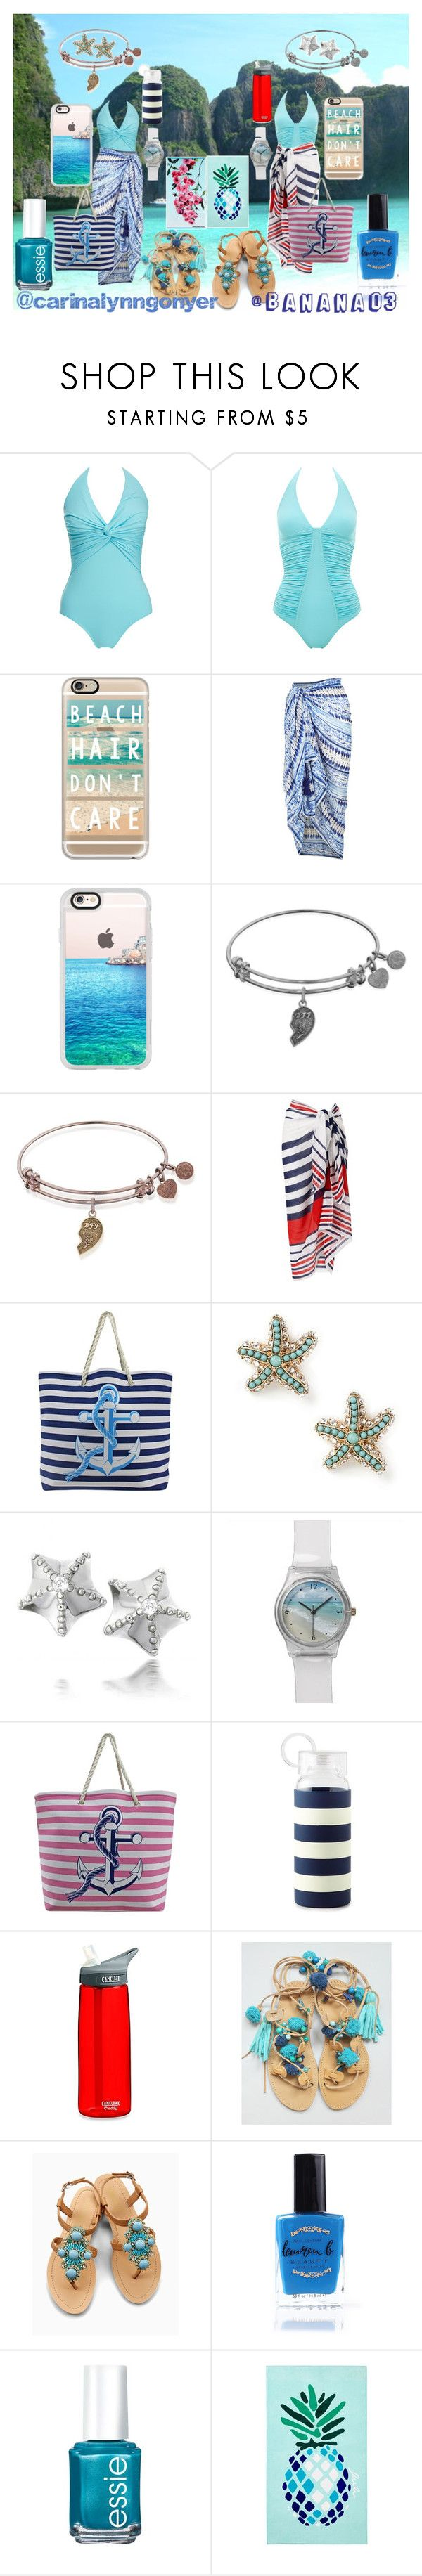 """""""A Day at The Beach With My Bestie!!"""" by bananao3 ❤ liked on Polyvore featuring Melissa Odabash, Casetify, Accessorize, Phase Eight, Bling Jewelry, Kate Spade, Olivia Miller, Lauren B. Beauty, Essie and Matouk"""